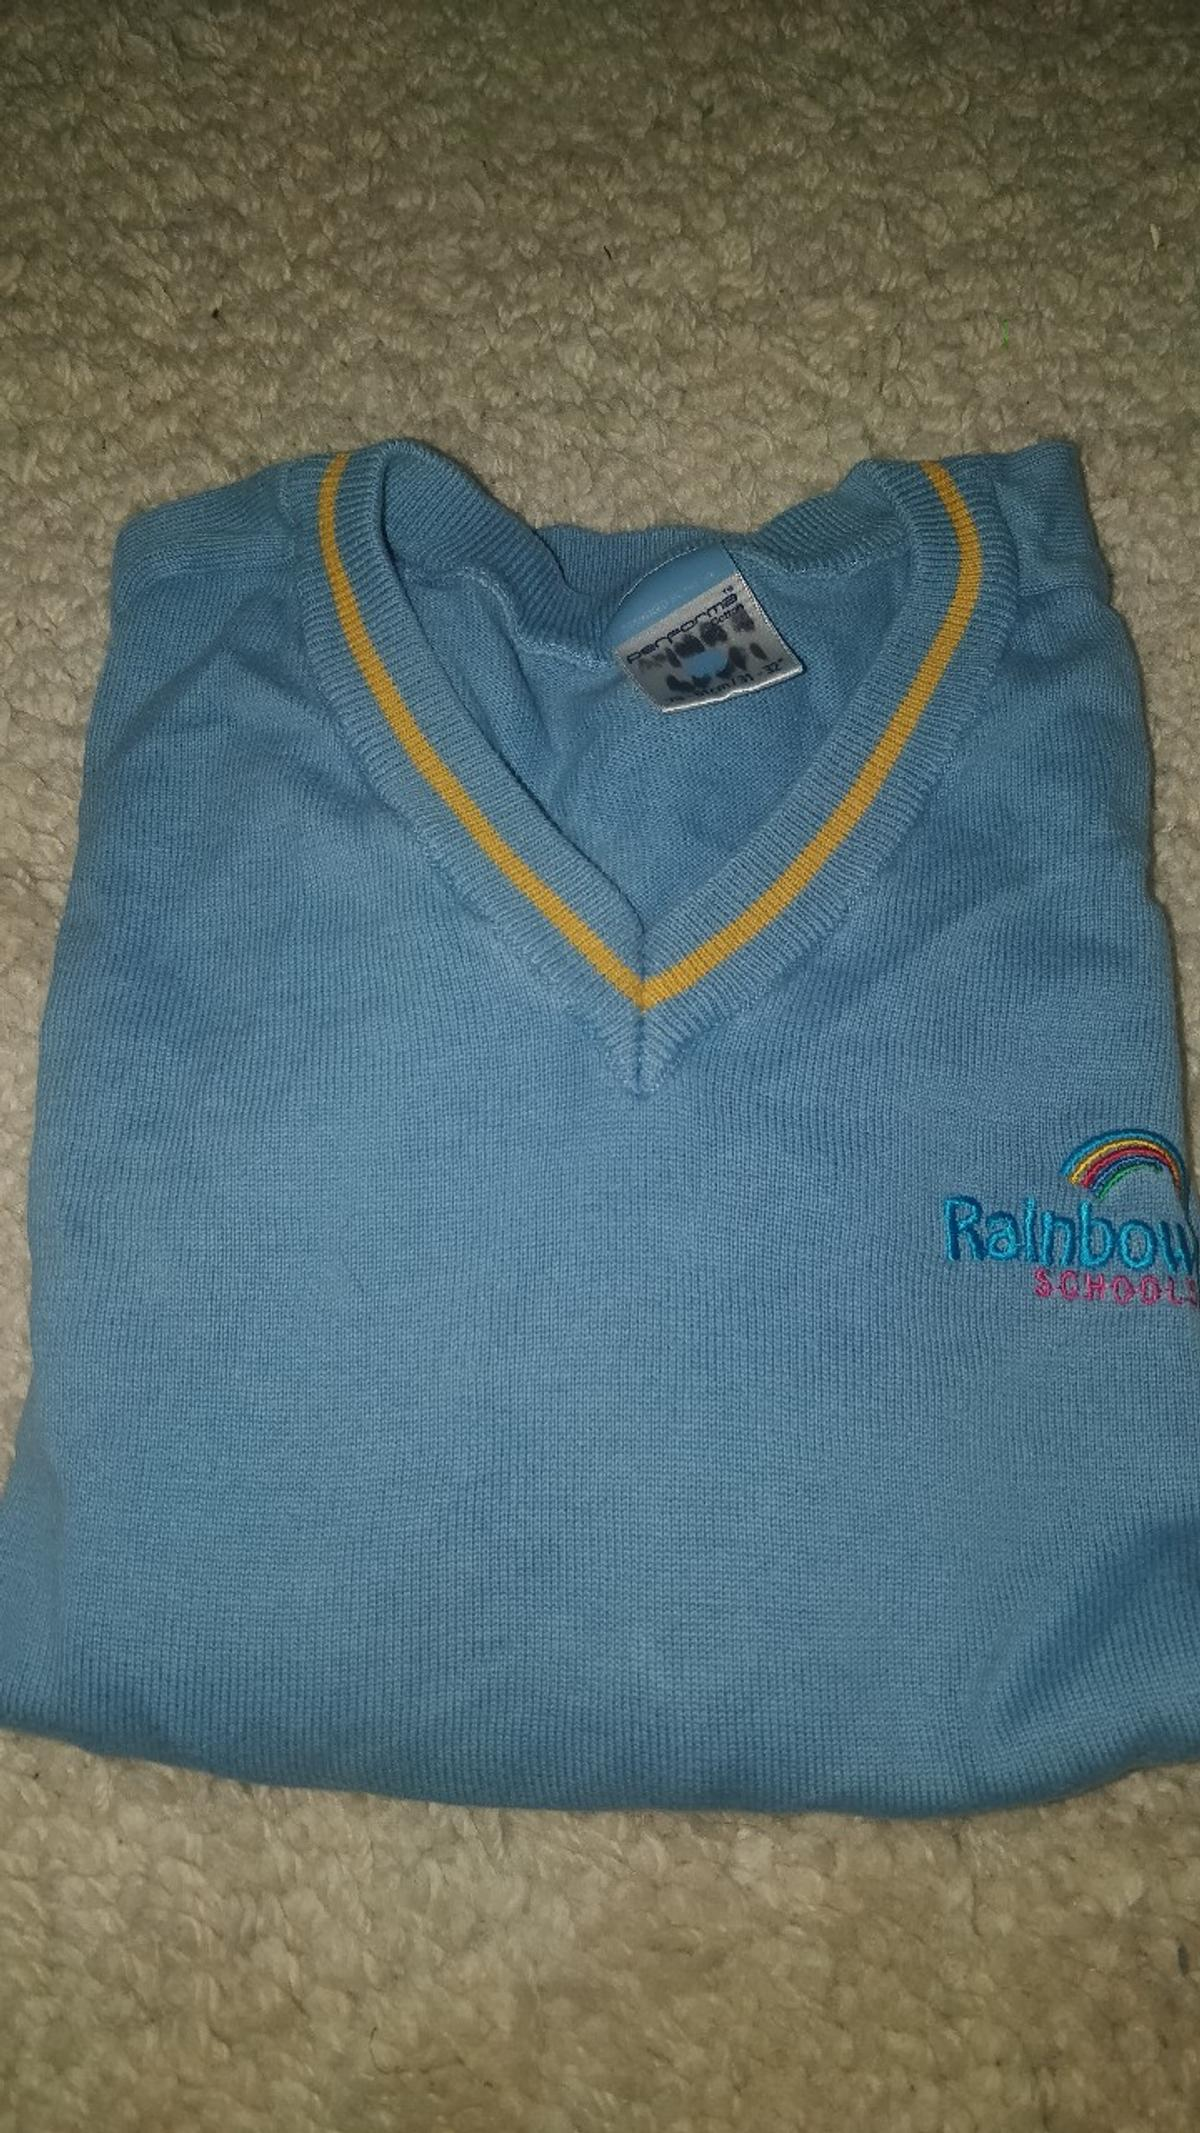 good condition jumper. size 13 which fits upto year 6